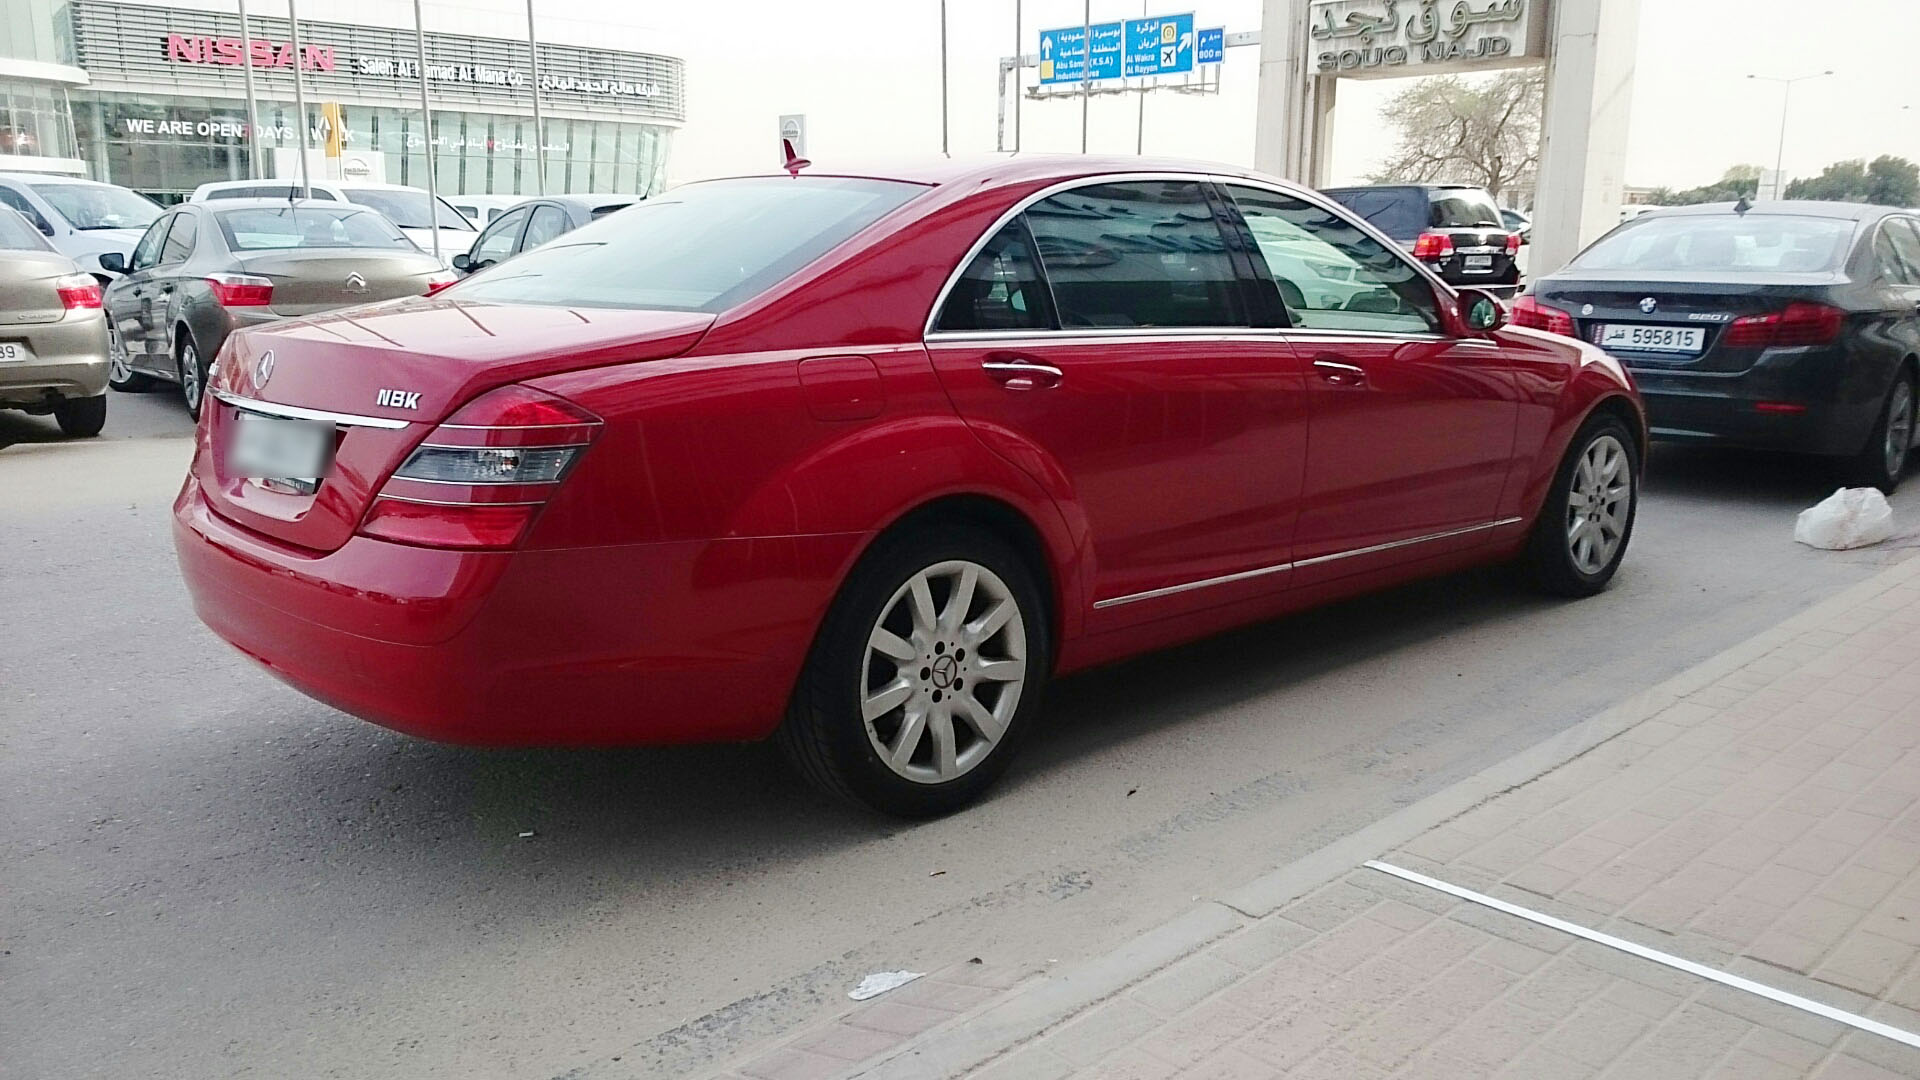 For sale mercedes benz s350 qatar living for Mercedes benz s350 for sale